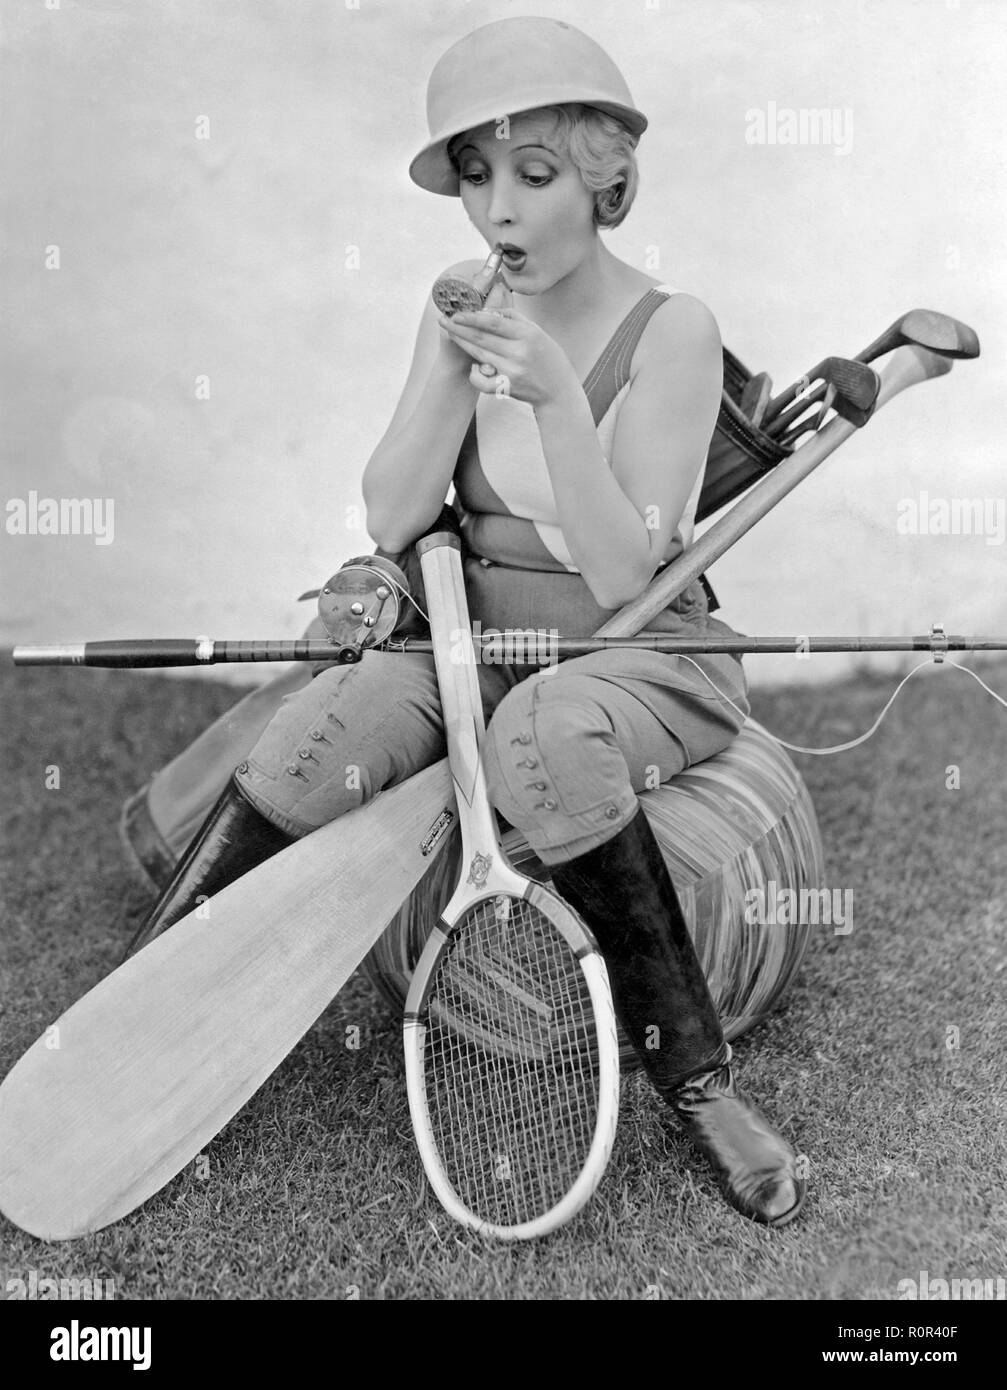 Bessie Love, 1898-1986. American actress pictured here with a lipstick and a small pocket mirror. She is surrounded by different kinds of sport equipment, tennis racket, fishing rod, golf clubs and a kayak paddle. 1930s - Stock Image